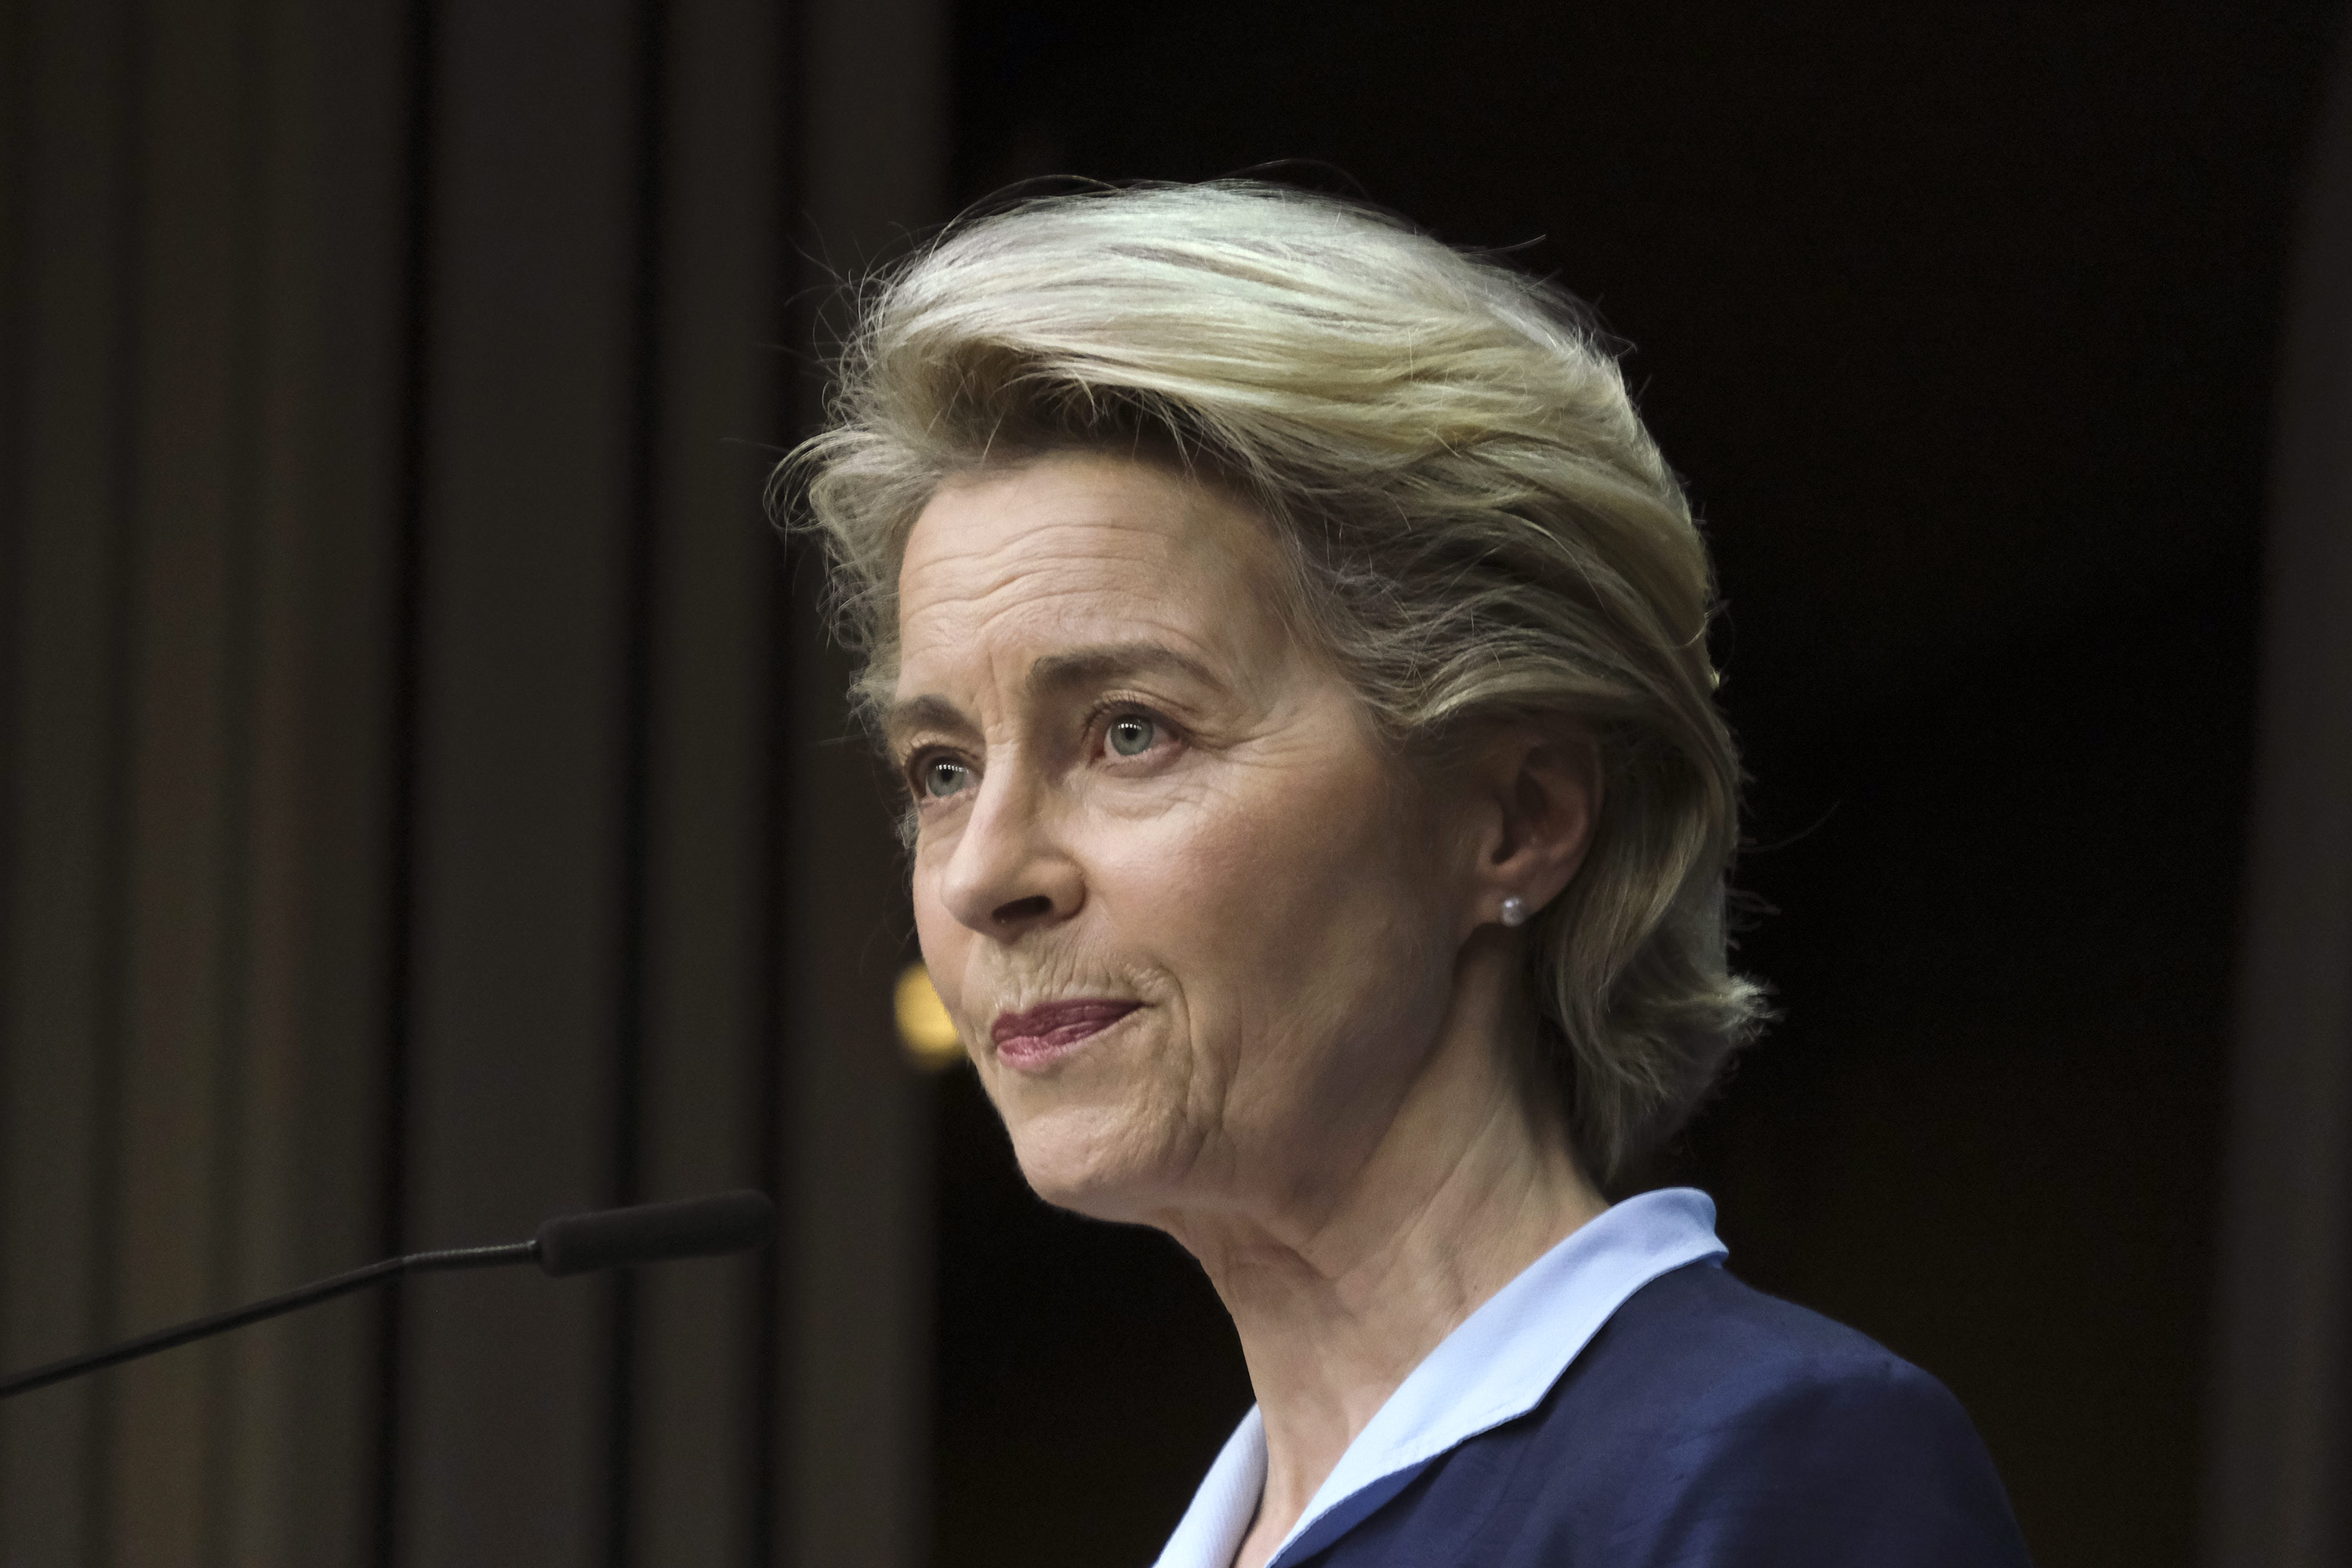 European Commission President Ursula von der Leyen speaks during a press conference on February 26, in Brussels, Belgium.